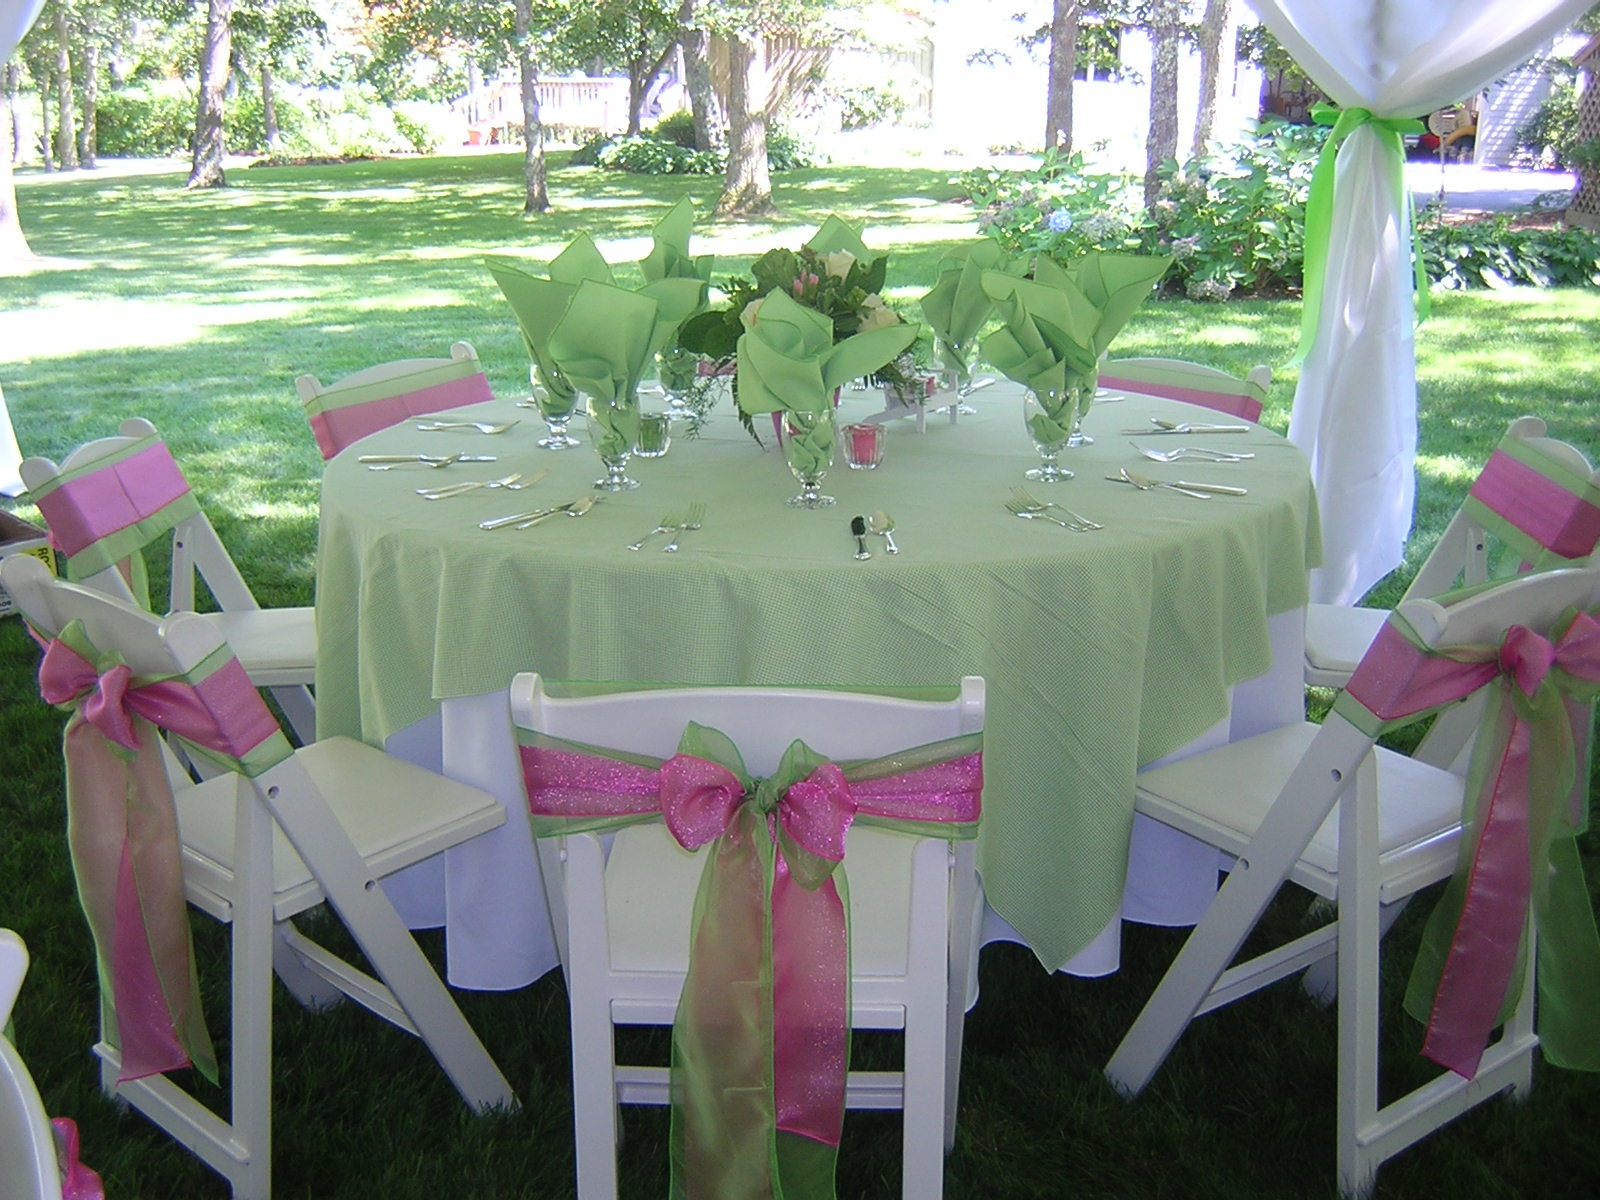 Rustic Wedding Tent Decorations Lovely Rustic Wedding Tent